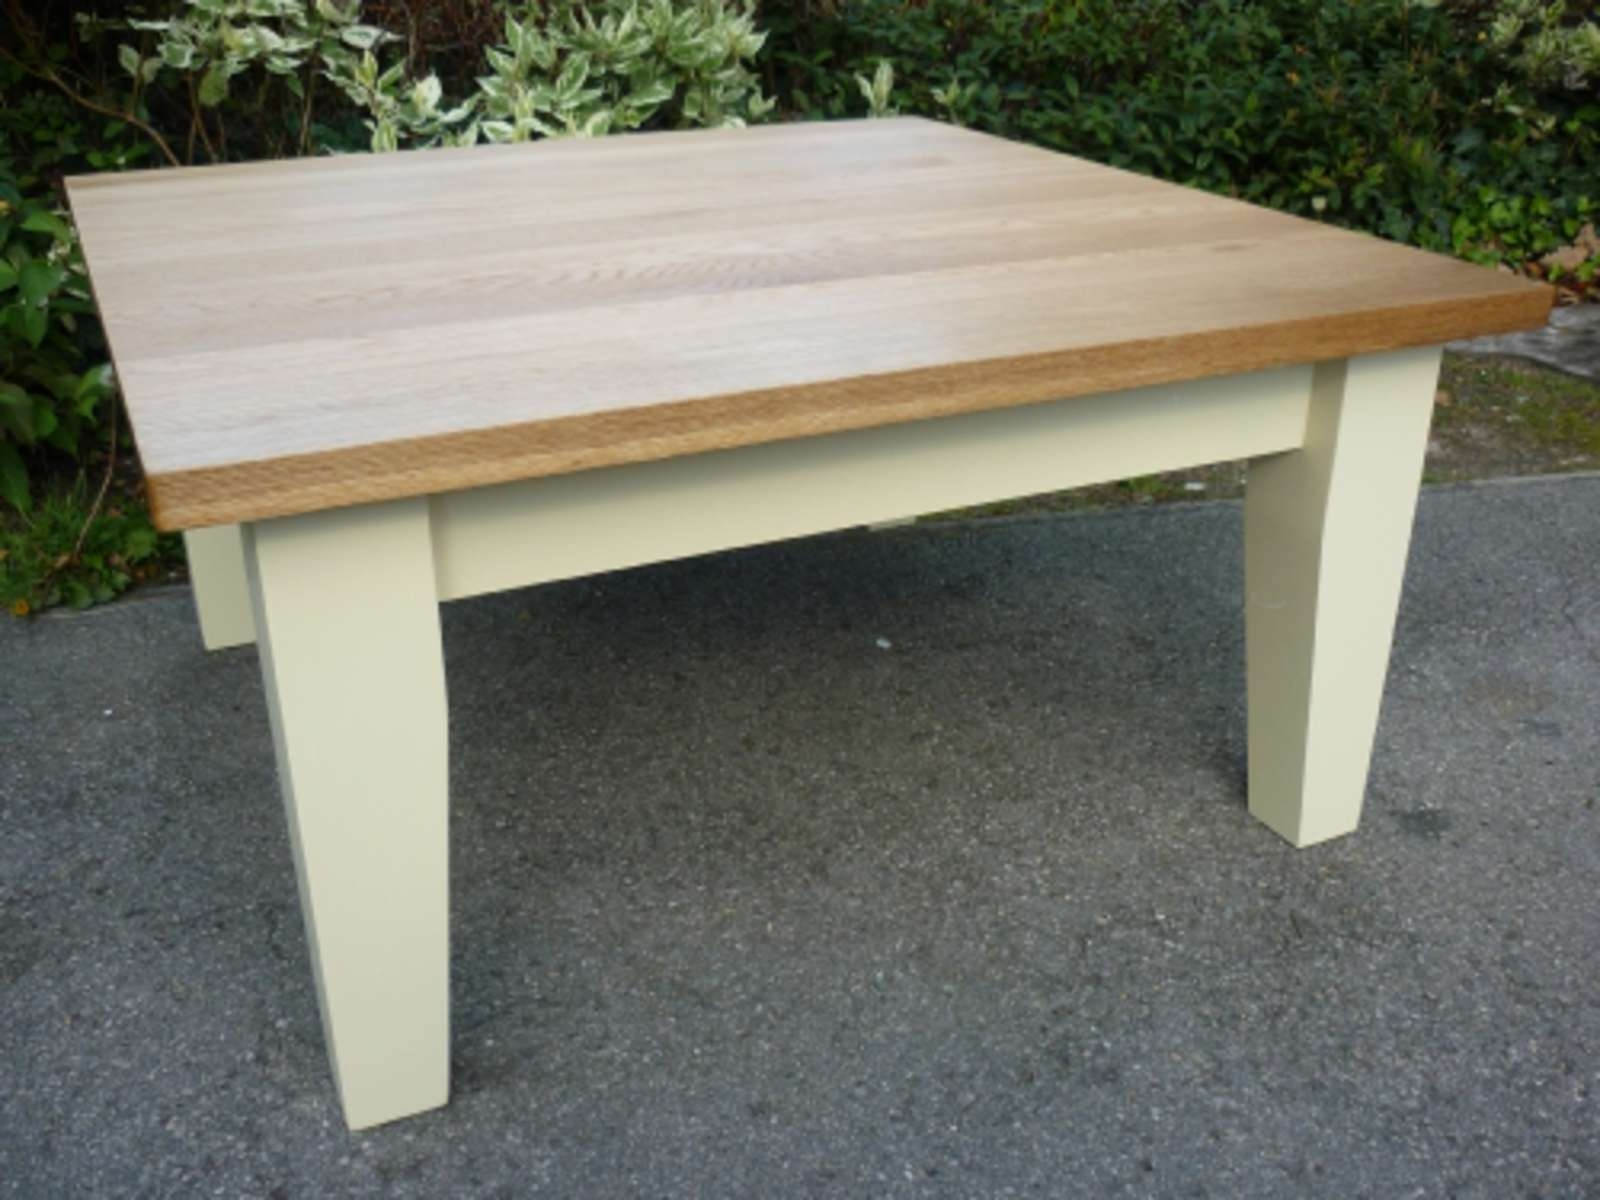 Widely Used Bespoke Coffee Tables With Regard To Coffee Tables – Bespoke Living Room Furniture – Pine Shop Bury (View 20 of 20)